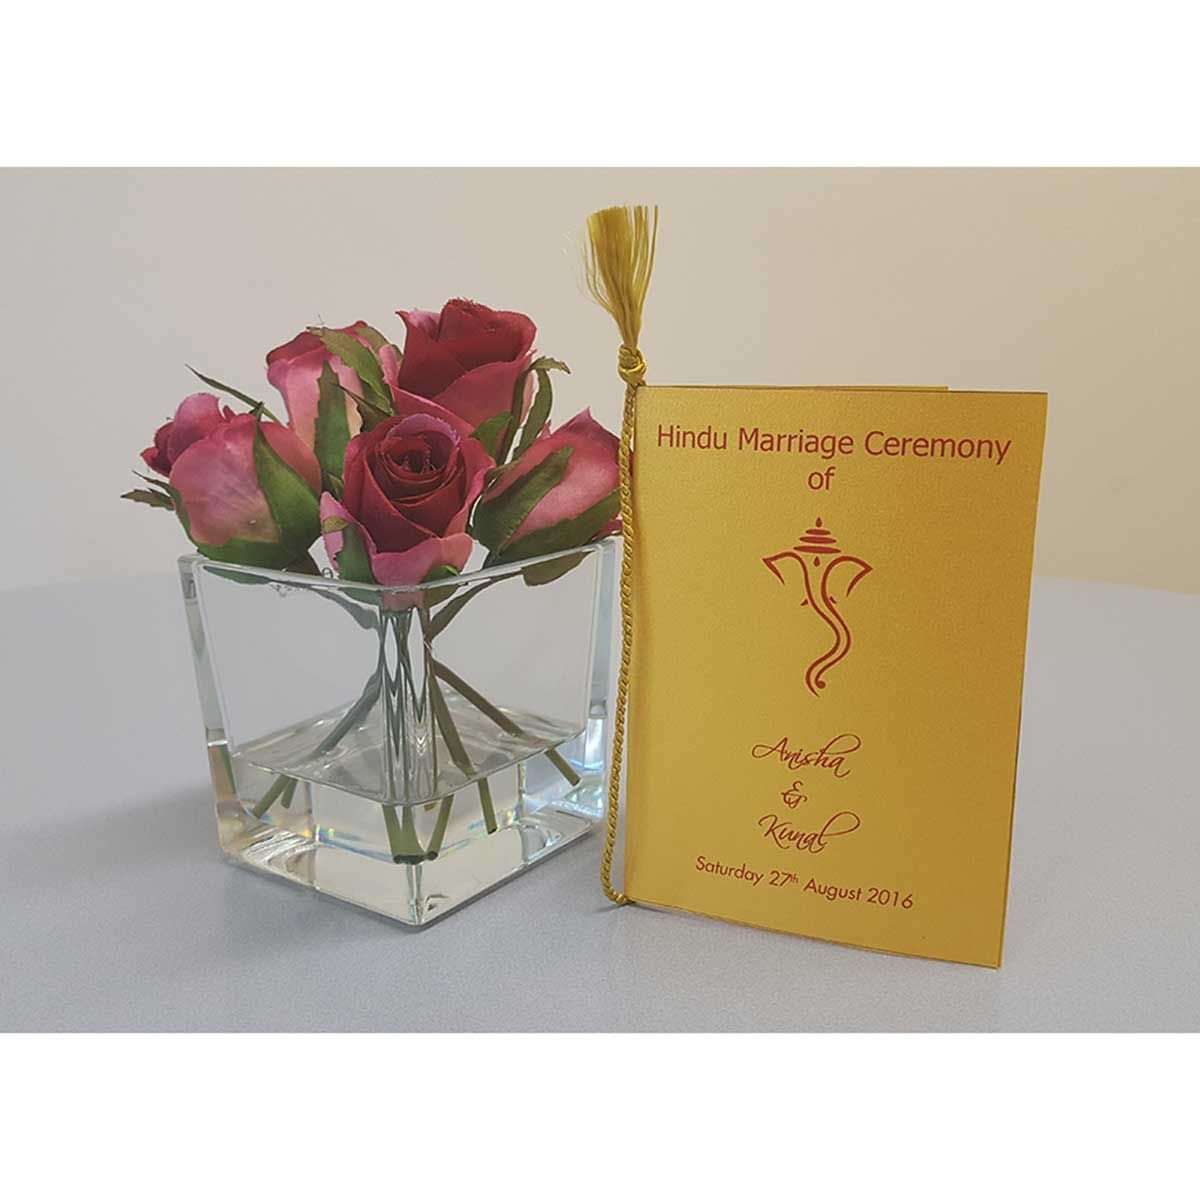 Kankotri Wedding Invitation Cards Leicester Wedding Ceremony Program Booklet Hindu Ceremony Hindu Ceremony Wedding Ceremony Accessories Ceremony Programs